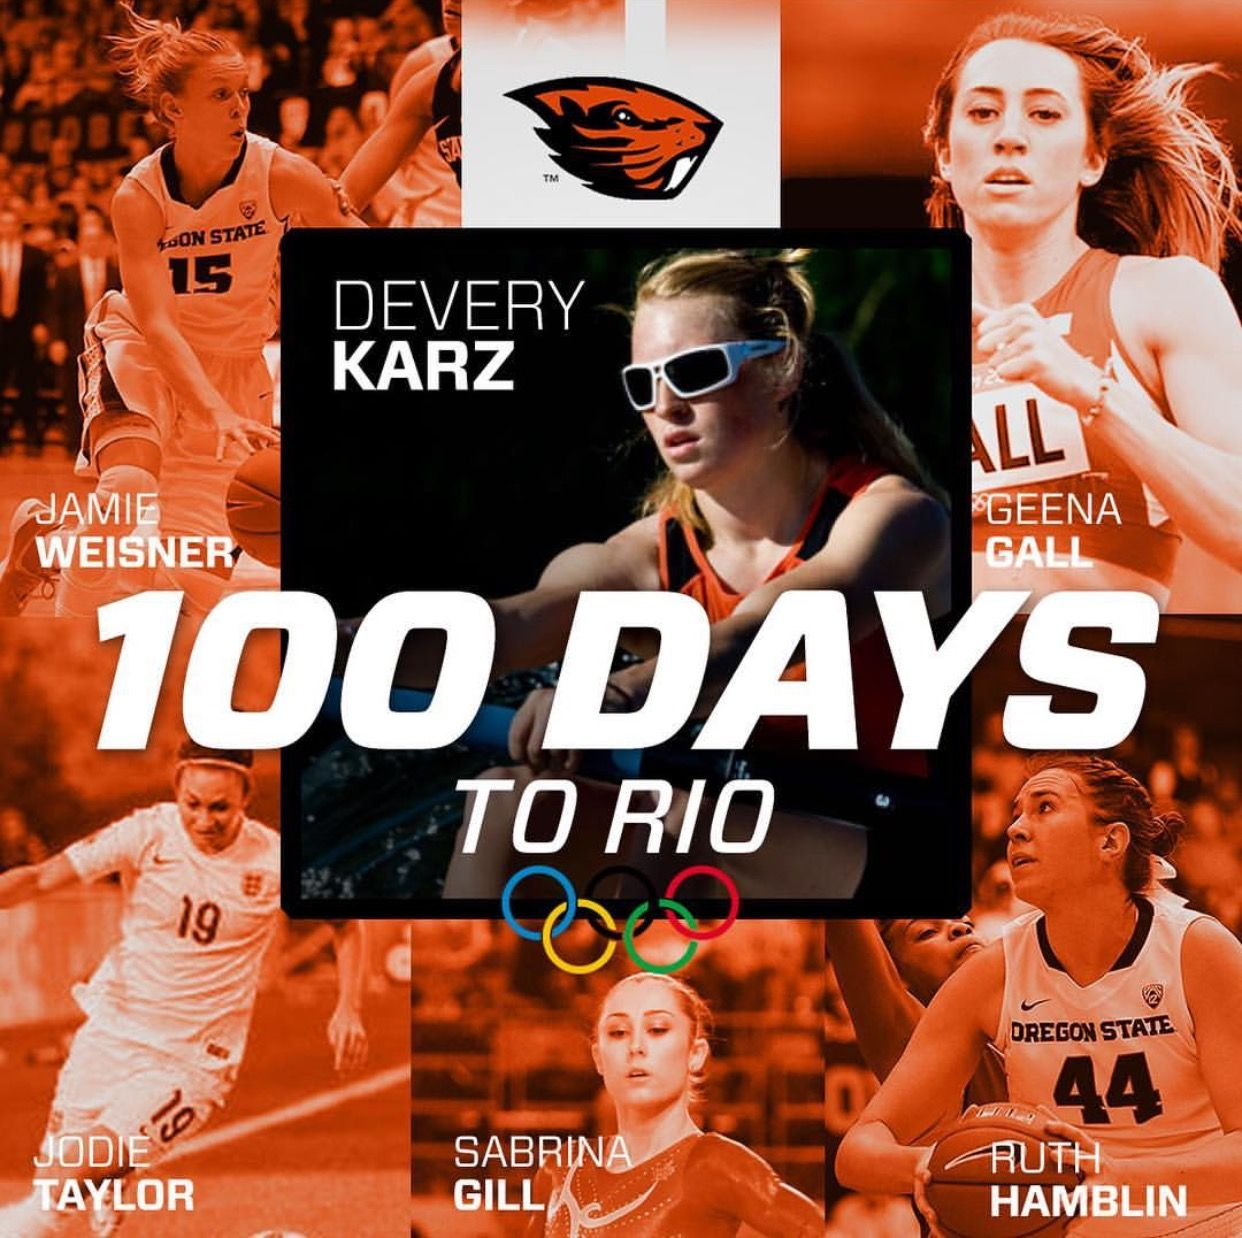 Oregon State Olympic sports